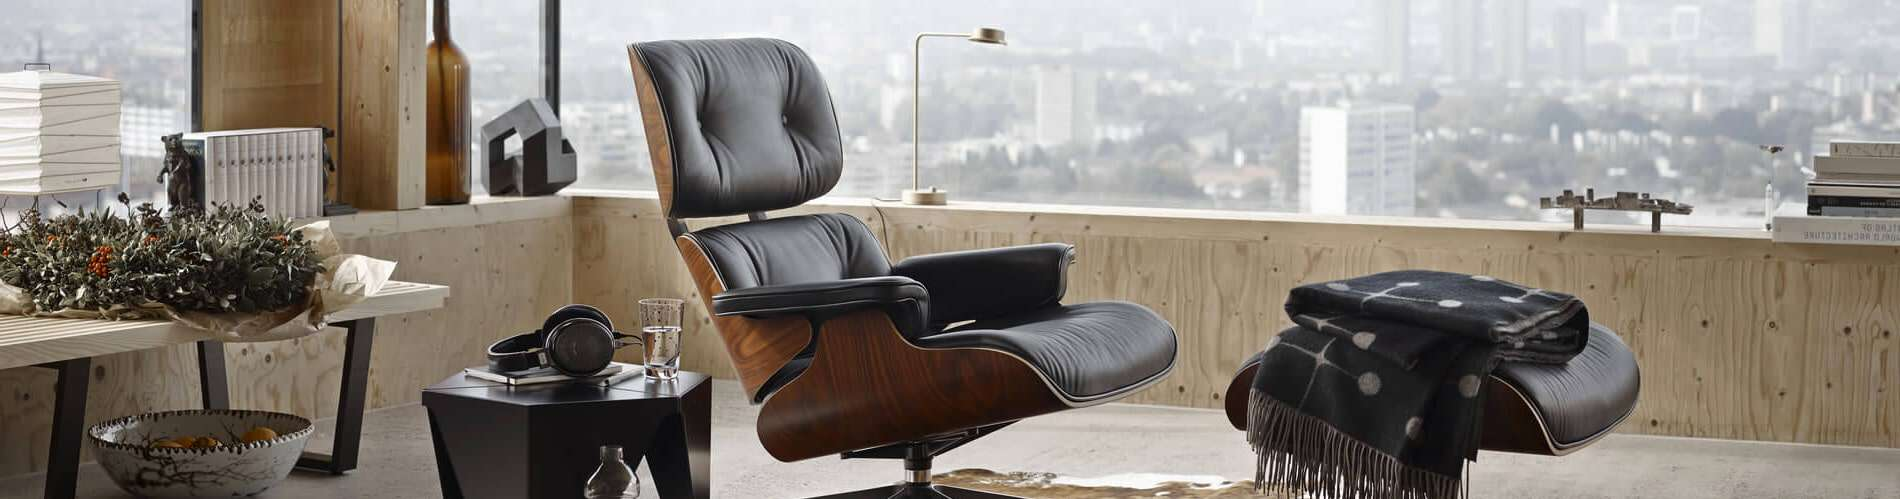 Outstanding Buy Eames Lounge Chair Premium Reproduction At Bybespoek Creativecarmelina Interior Chair Design Creativecarmelinacom